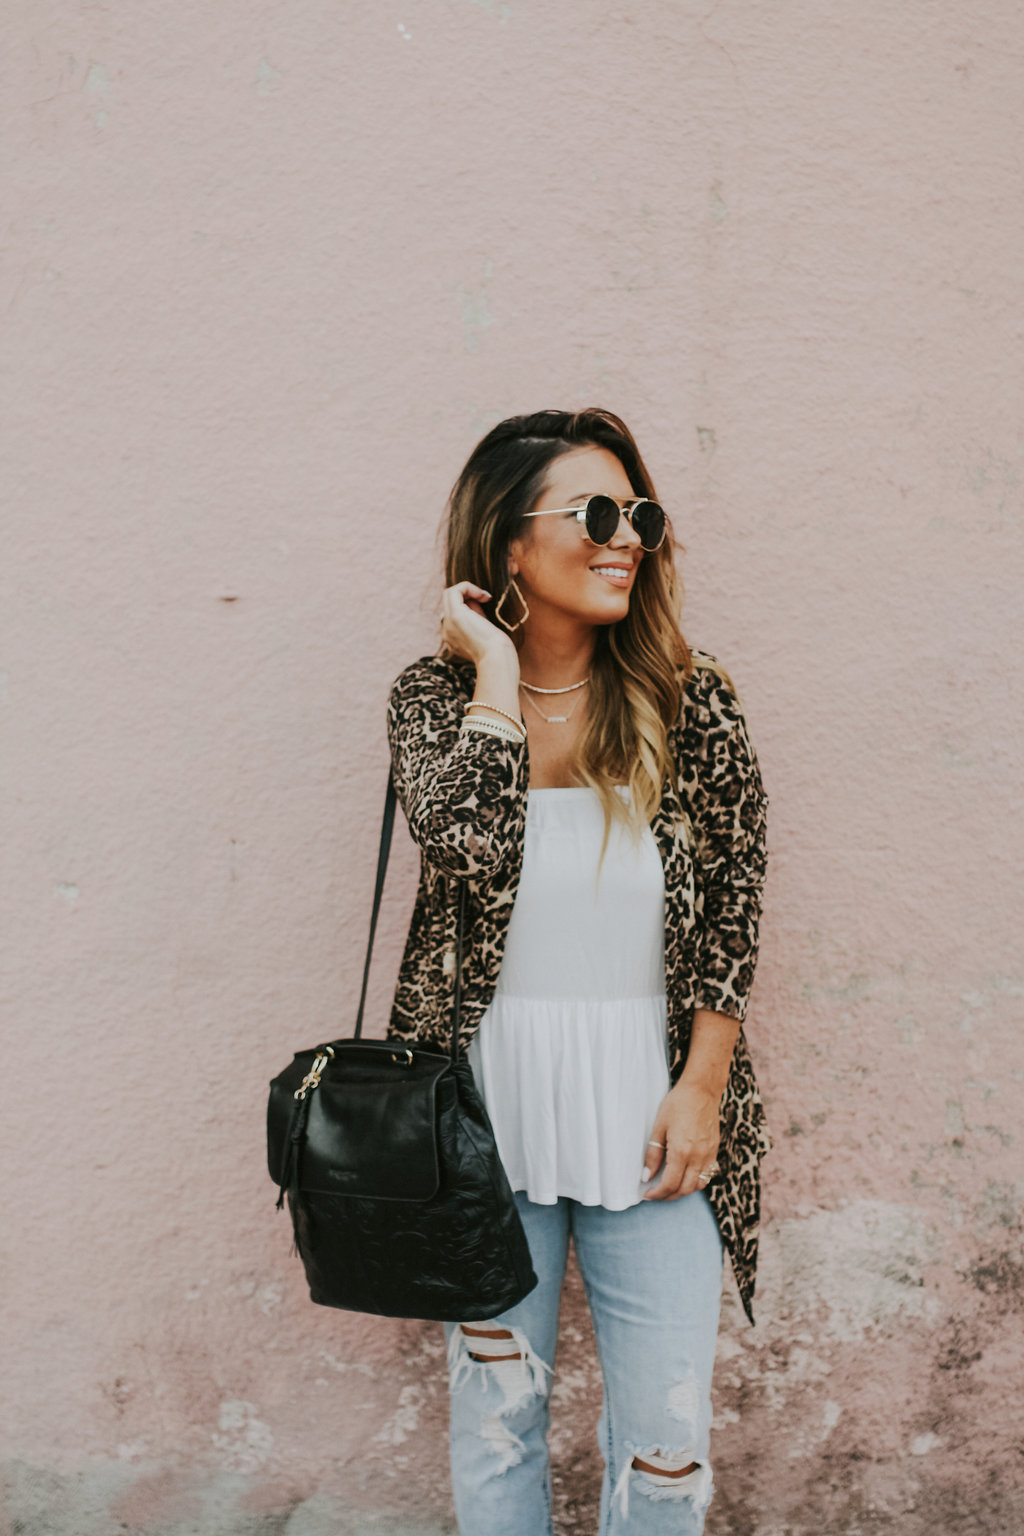 Leopard cardigan for under $35. Read more to learn multiple ways to style a basic cardigan.